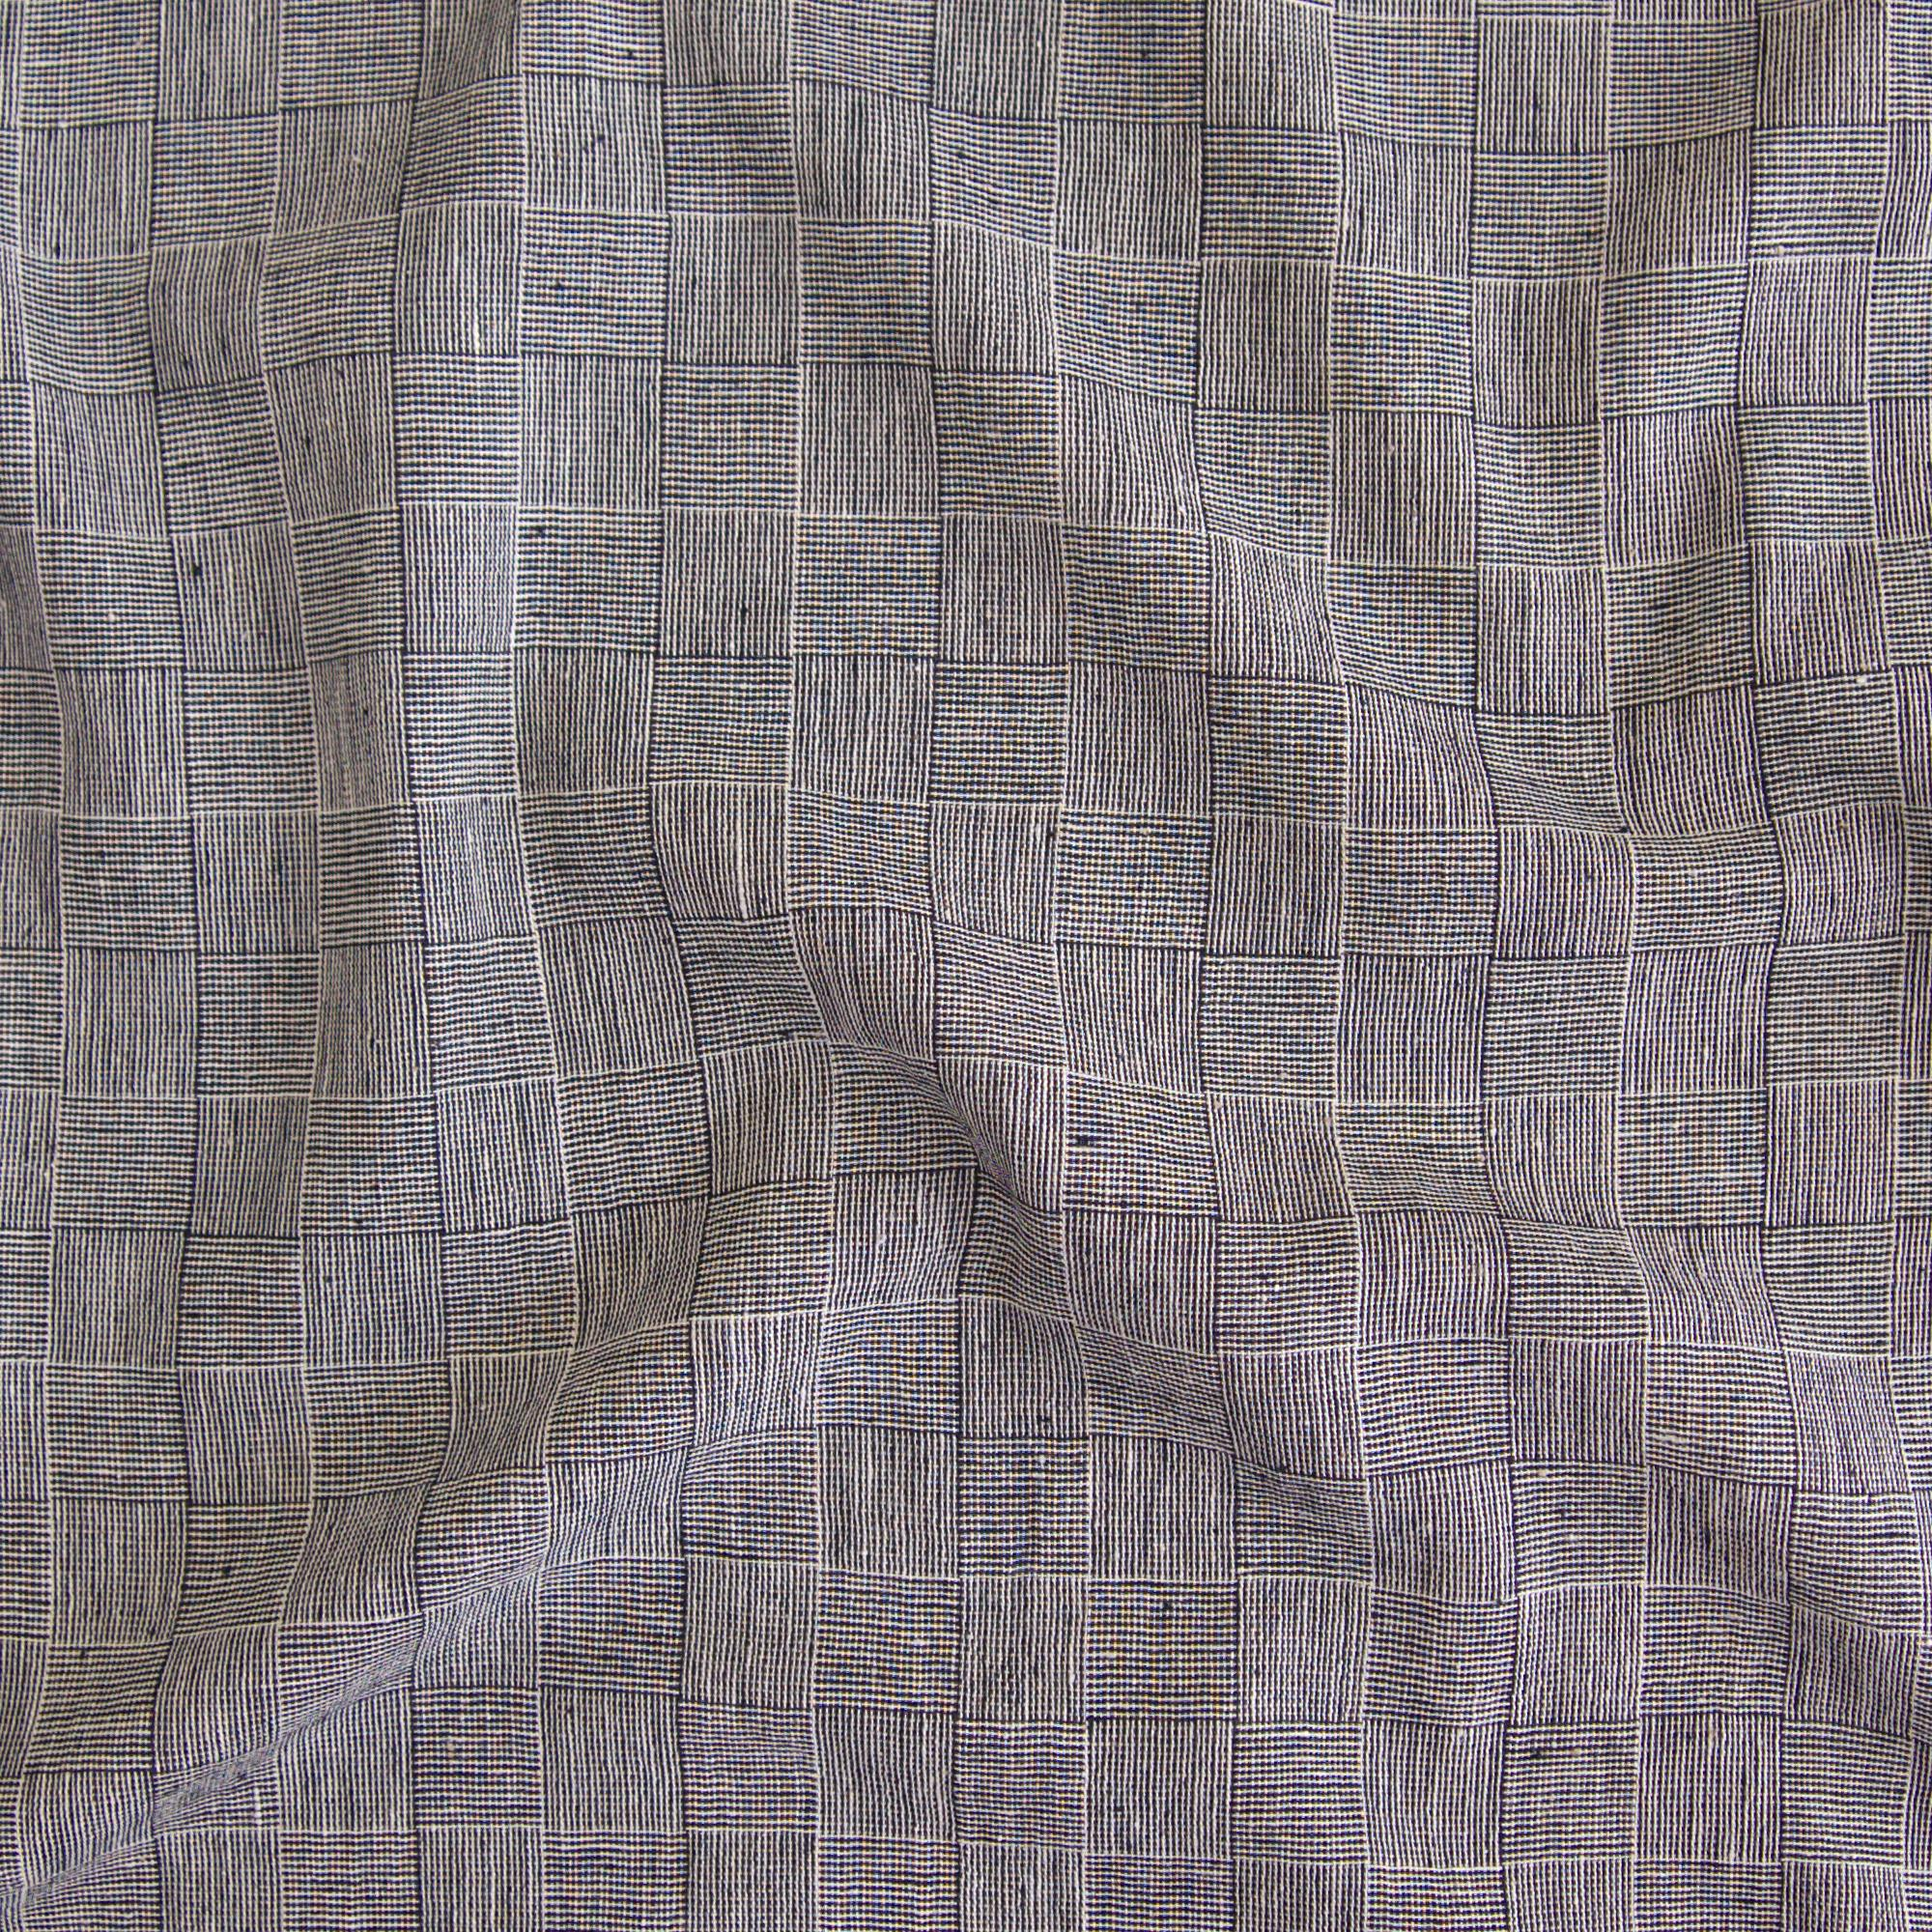 Indian Handloom-Woven Organic Kala Cotton Fabric - Plain 1 by 1 Weave - Checkers Design - Black Reactive Thread Dye - Contrast 2